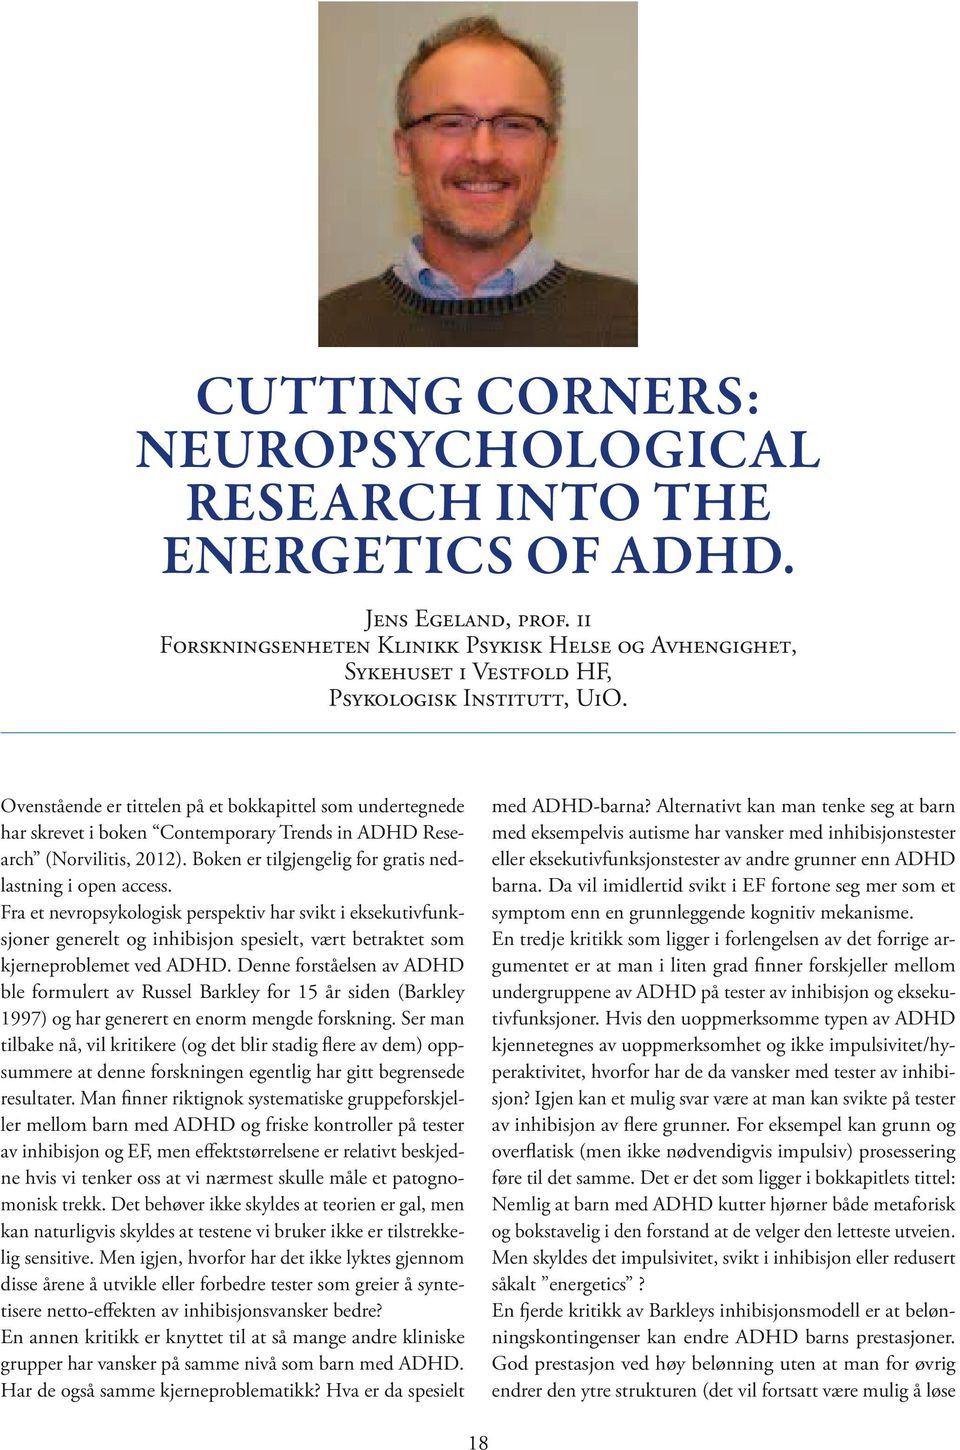 Ovenstående er tittelen på et bokkapittel som undertegnede har skrevet i boken Contemporary Trends in ADHD Research (Norvilitis, 2012). Boken er tilgjengelig for gratis nedlastning i open access.